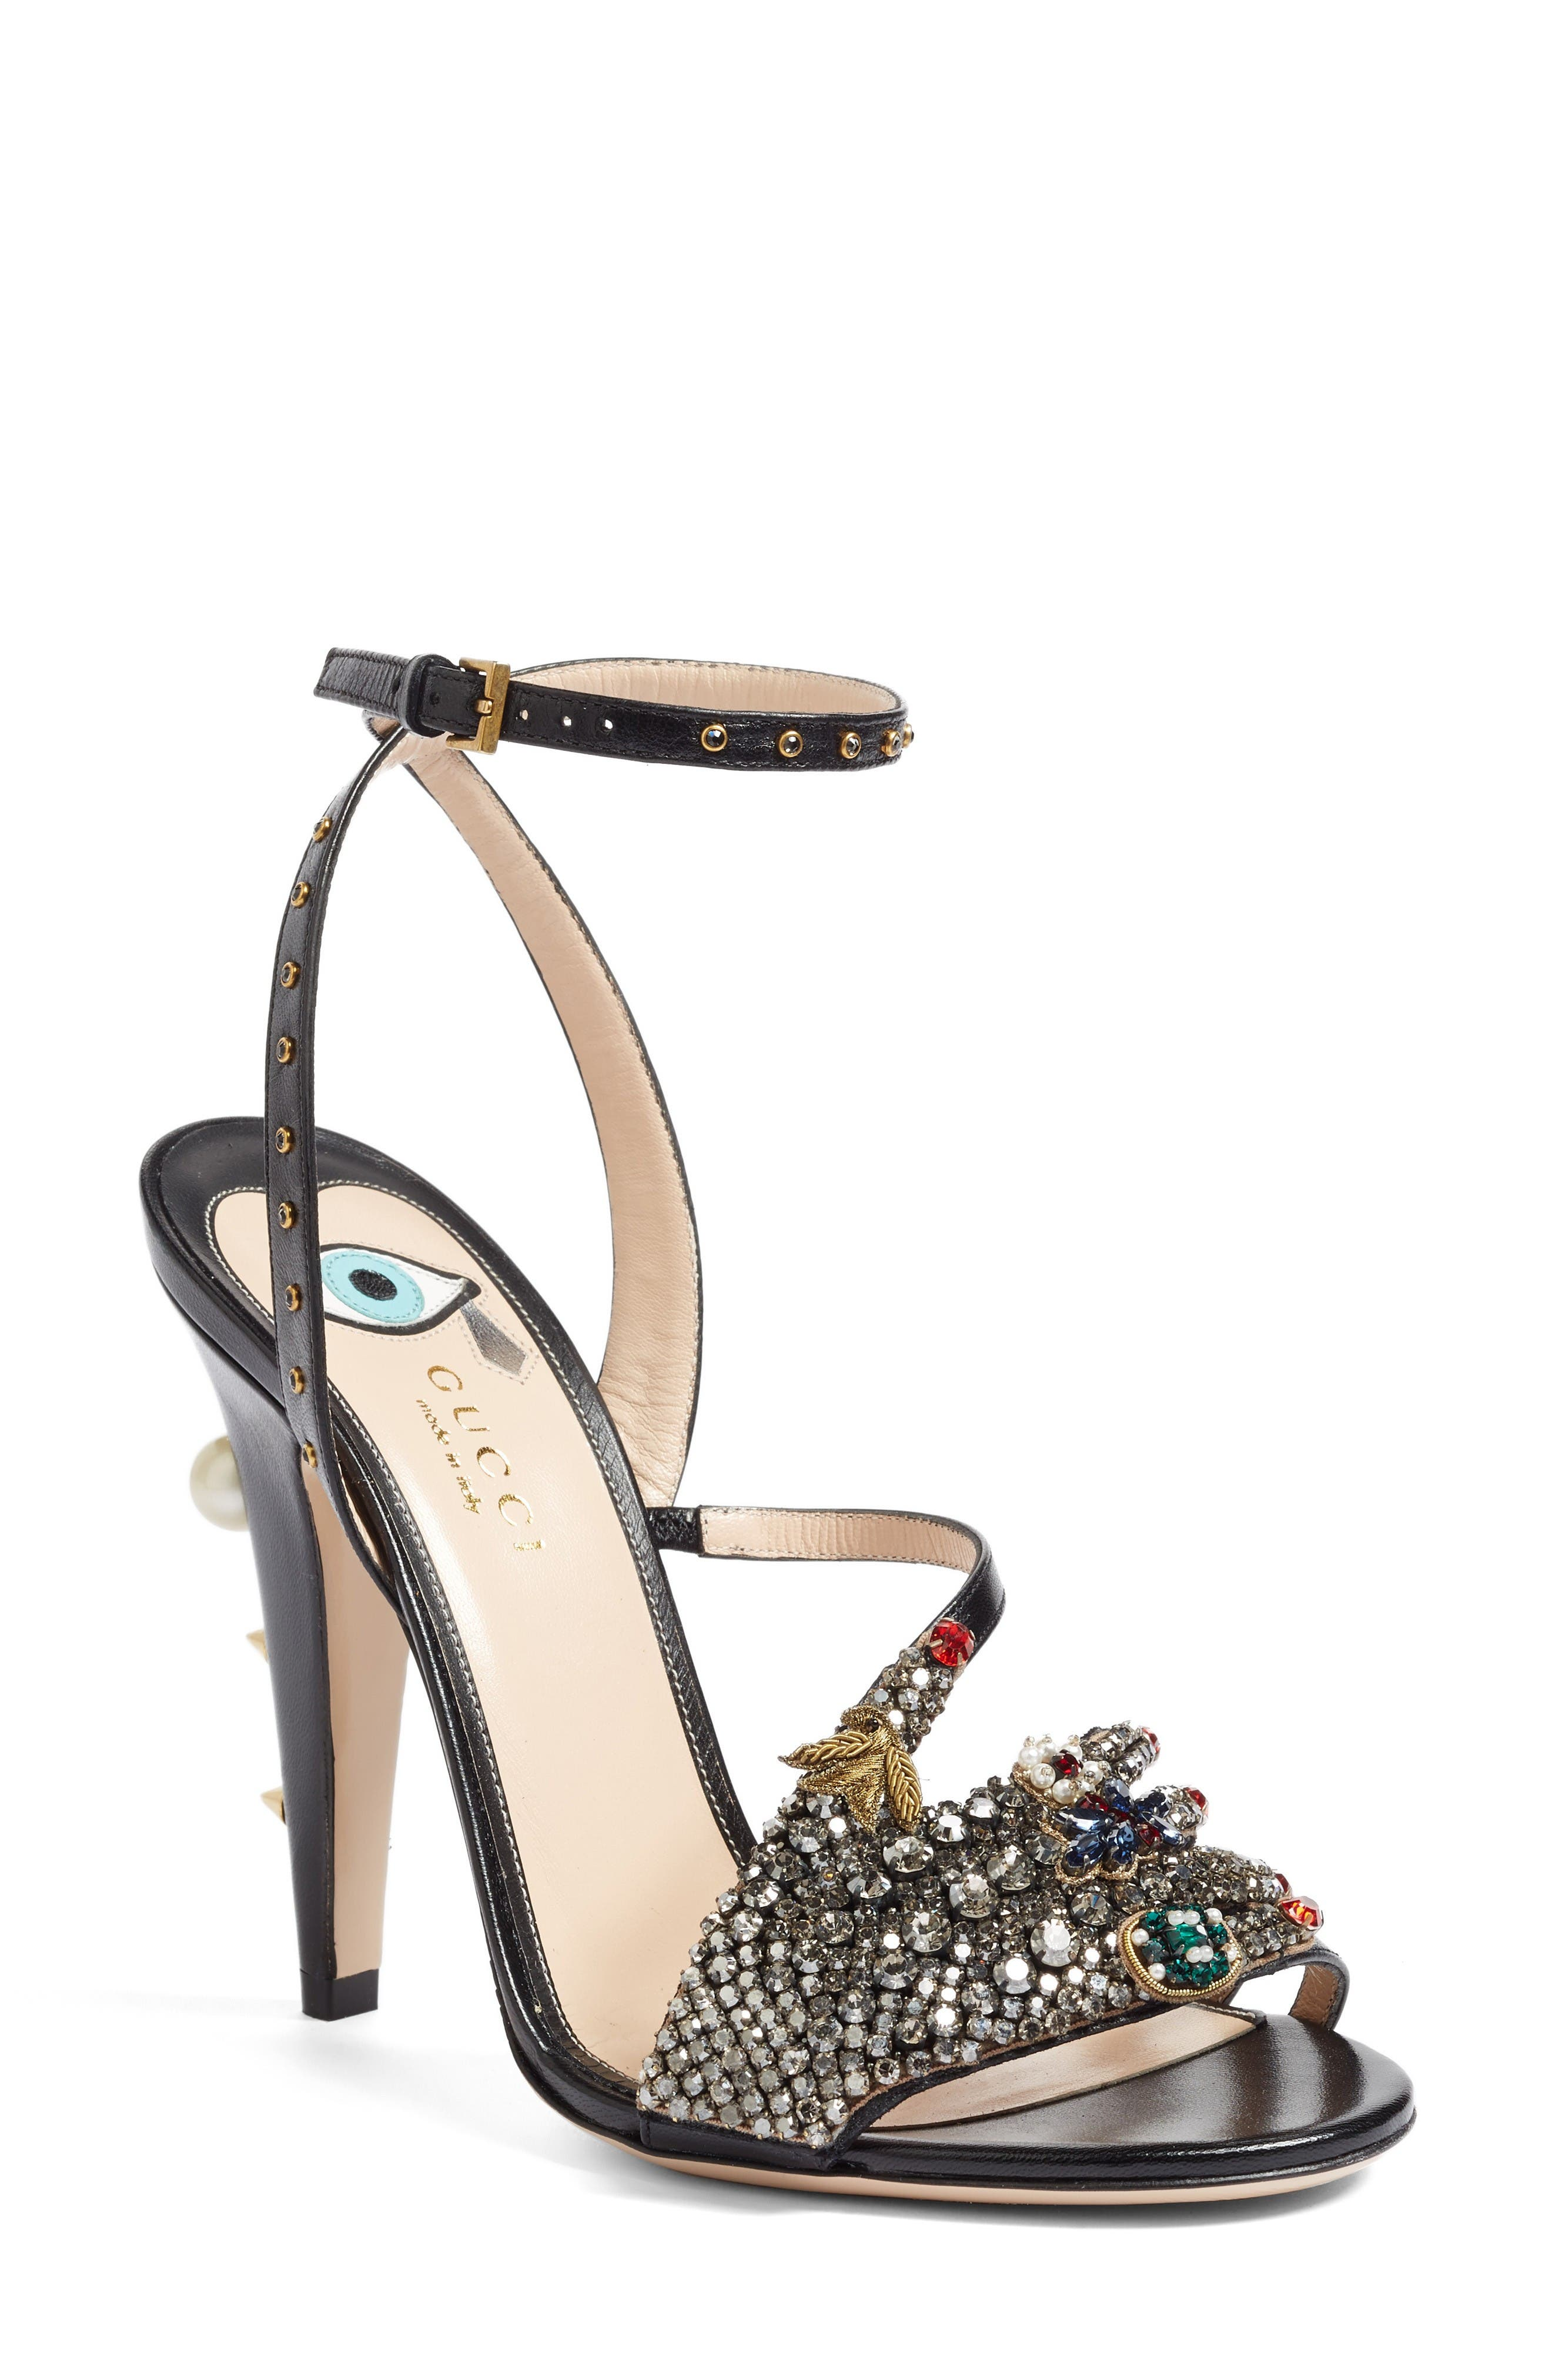 Main Image - Gucci Strappy Sandal (Women)